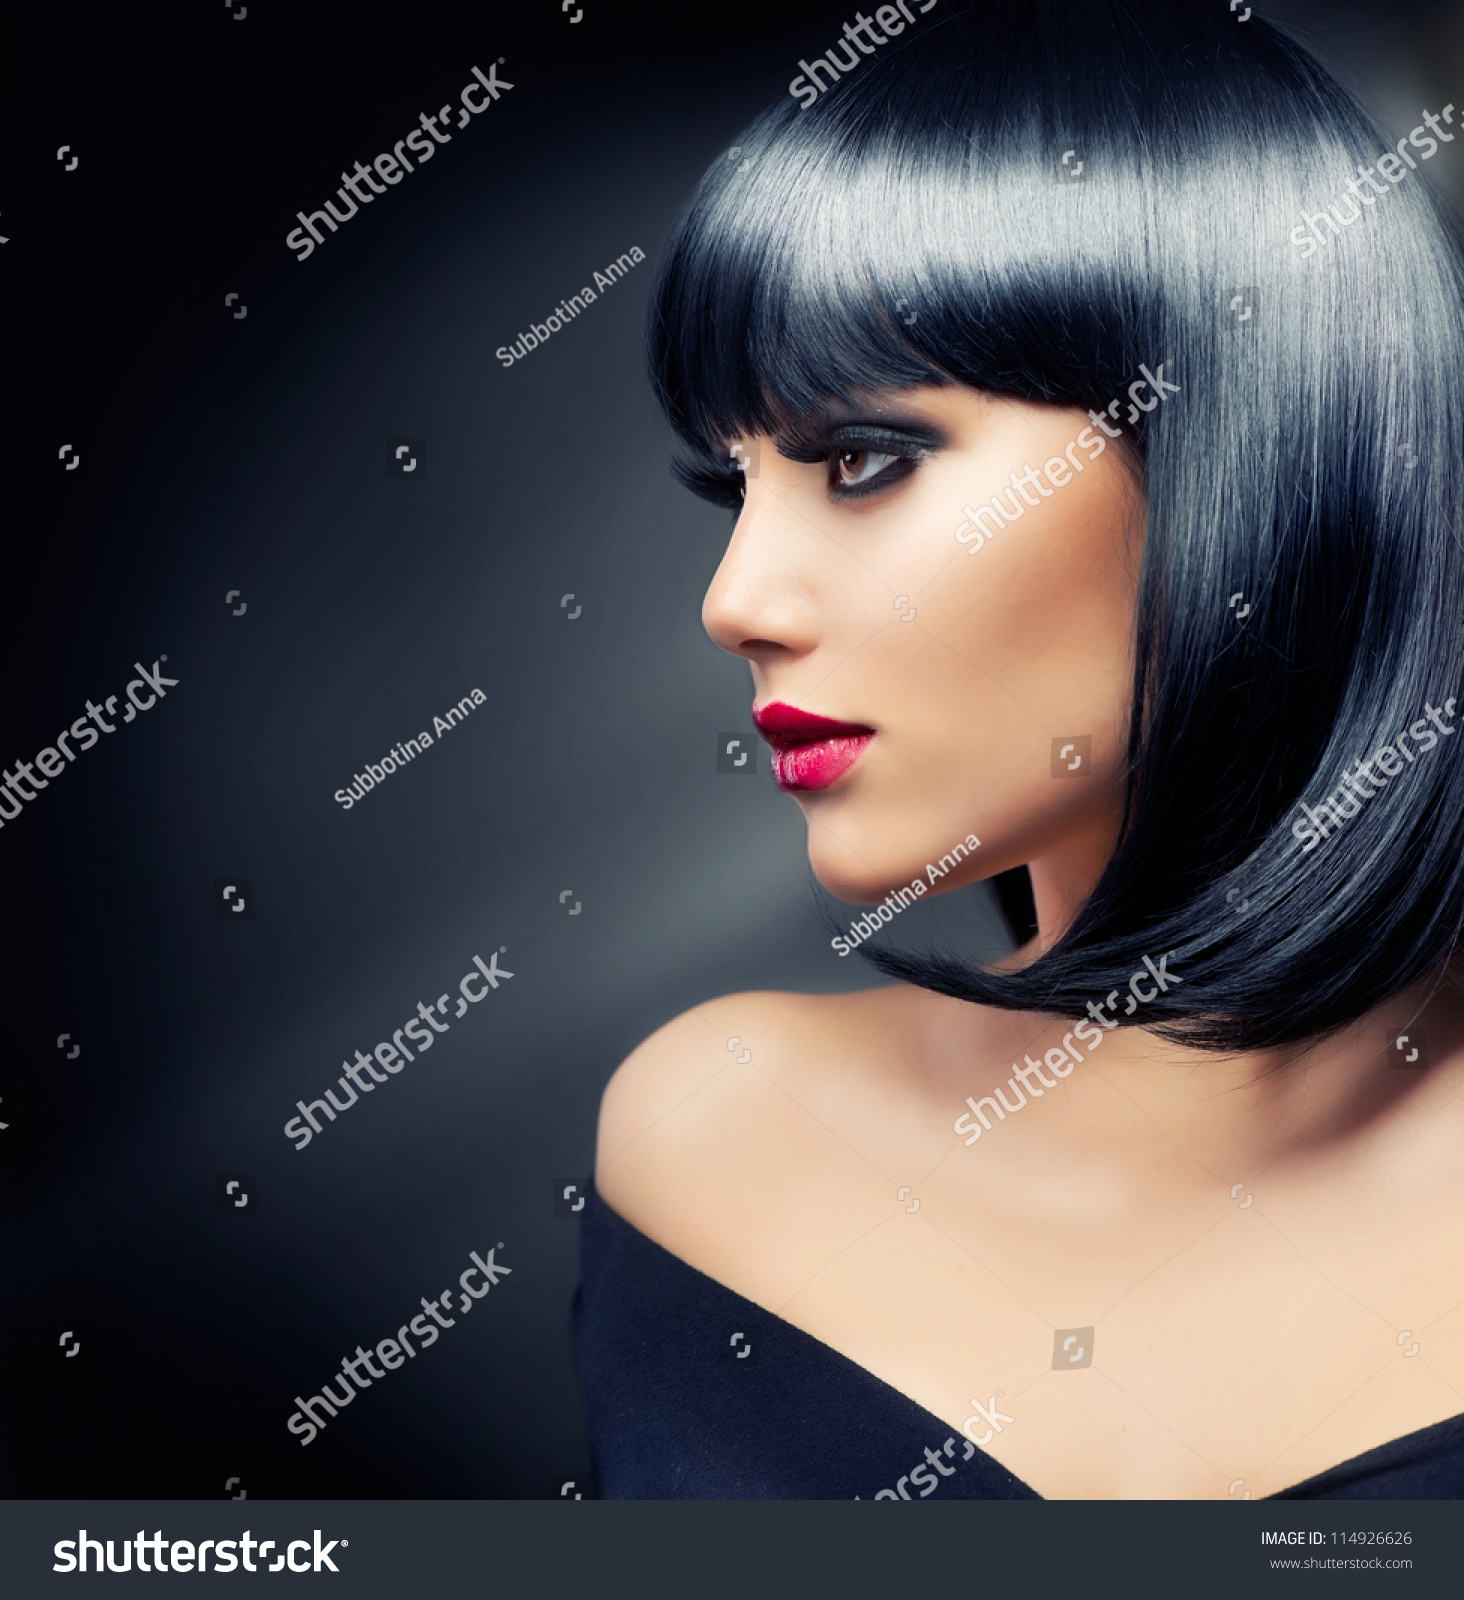 Are Beautiful girl with black hair long time